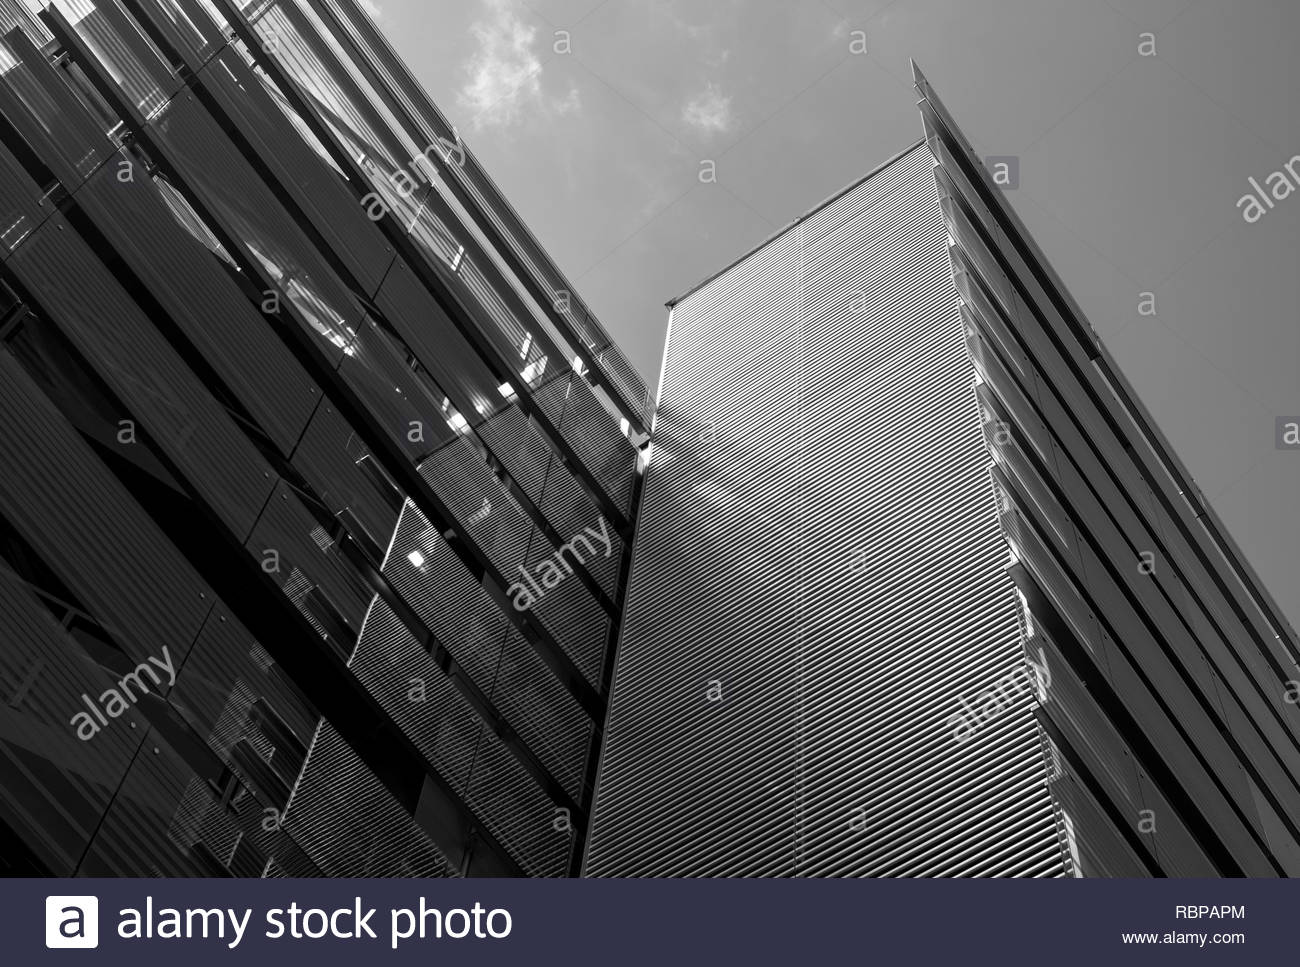 Low angle of university building - Stock Image